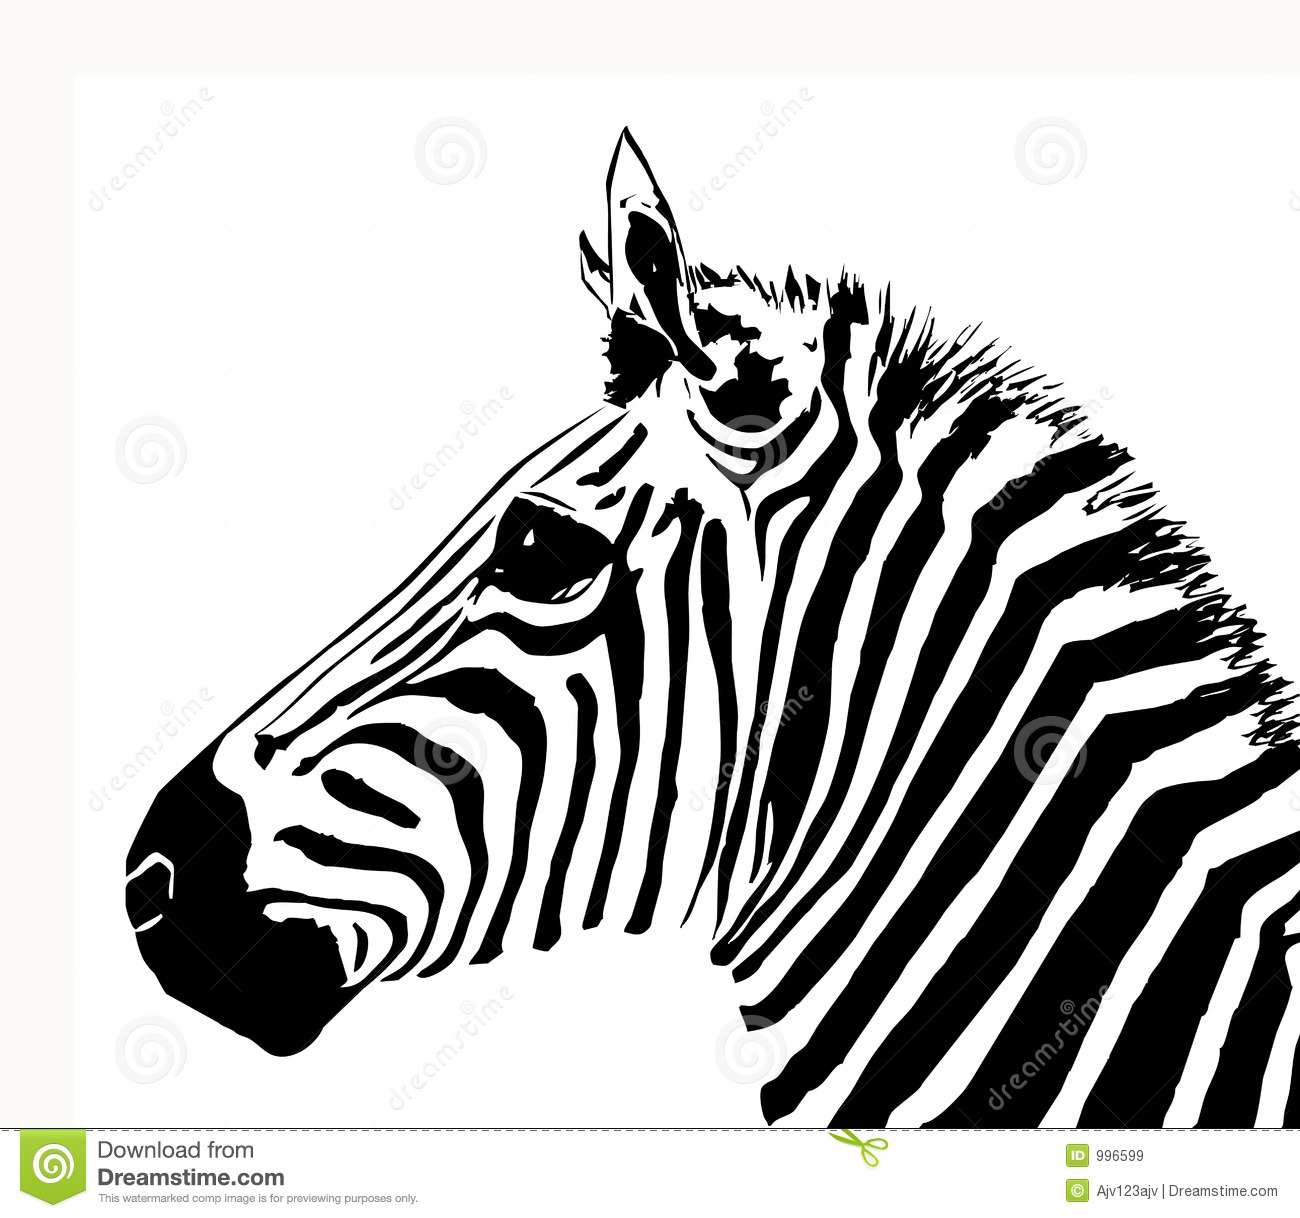 Zebra Royalty Free Stock Images - Image: 996599